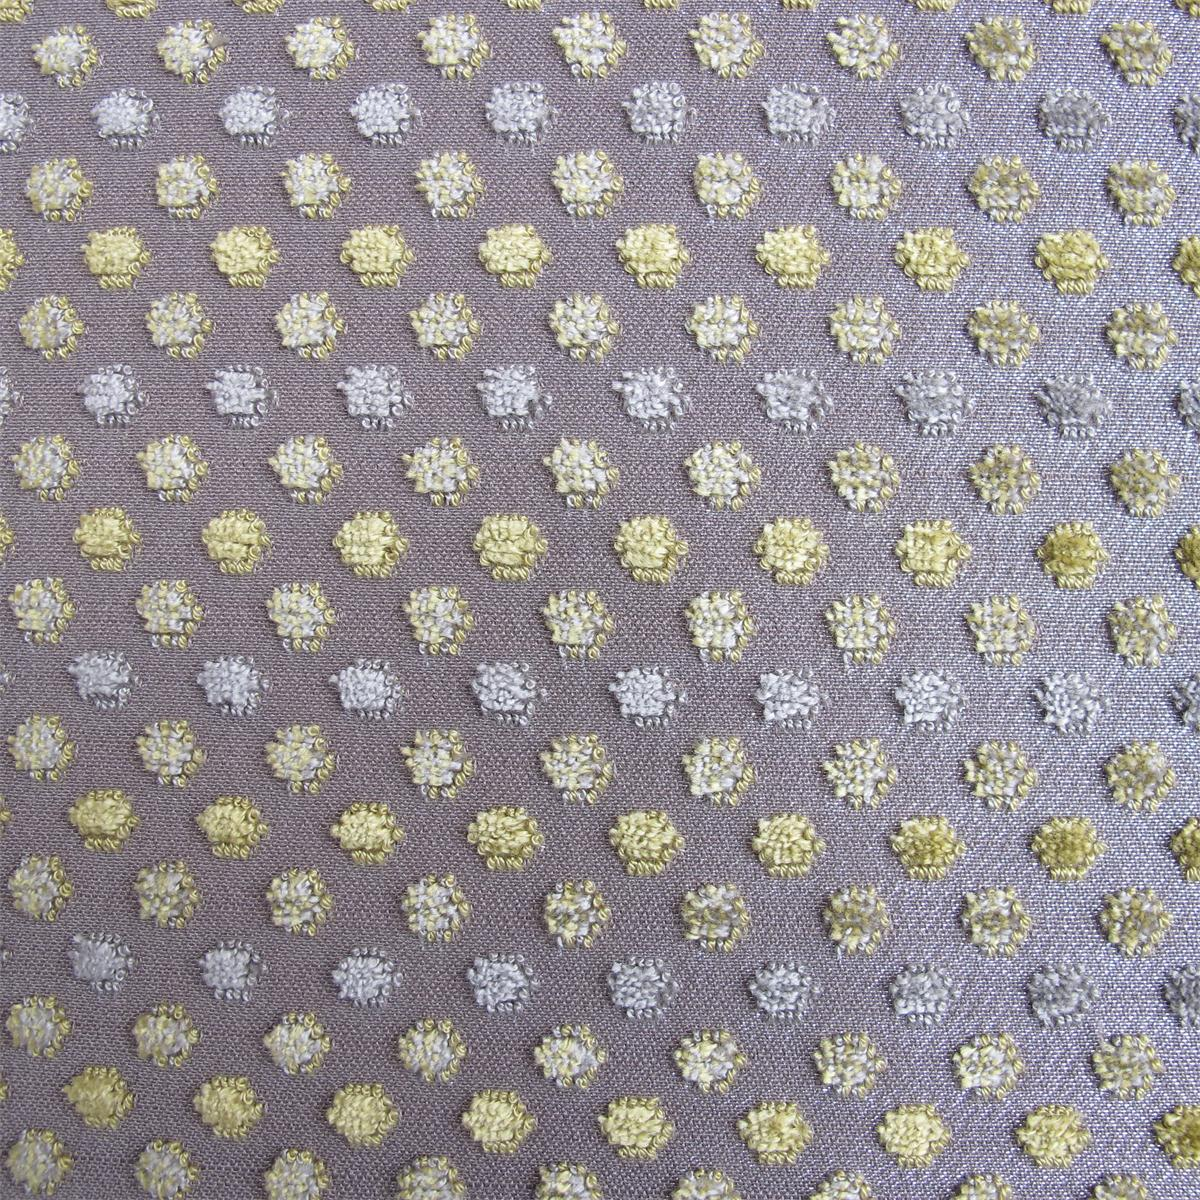 Yarn Dyed Jacquard Moquette Upholstery - KP14281 Bronze